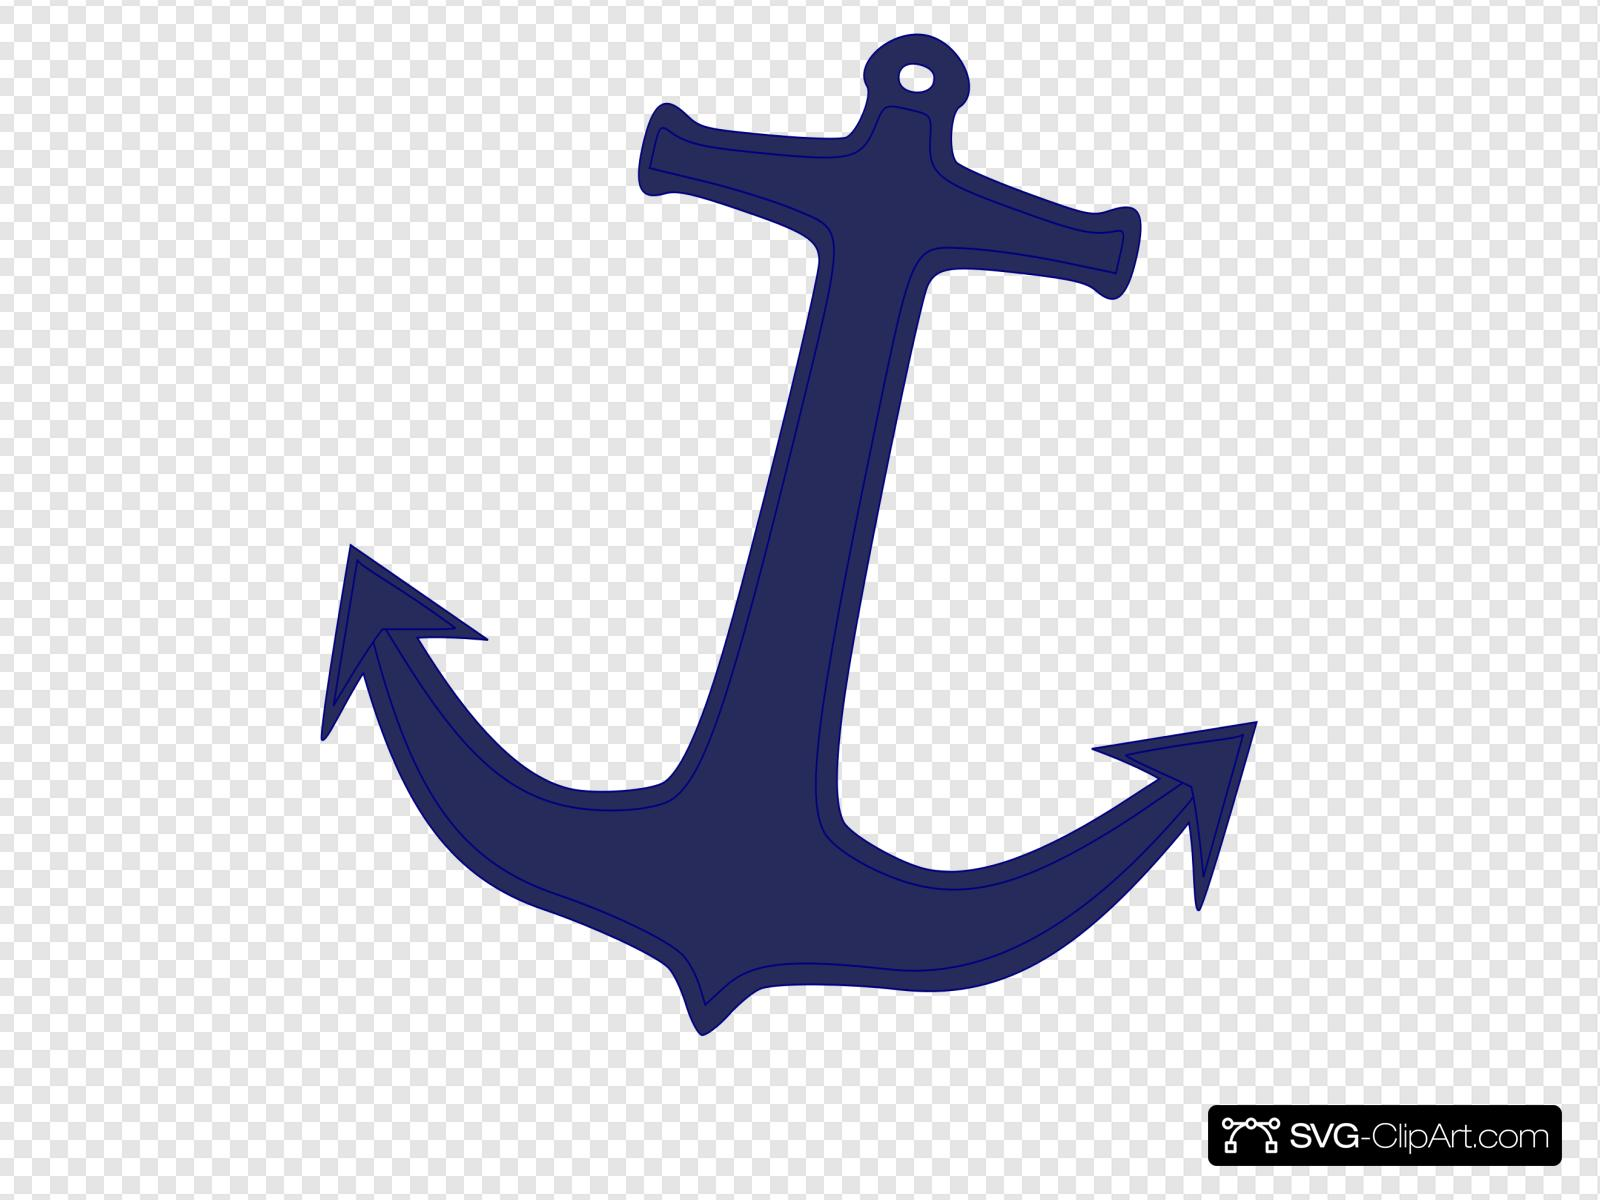 Anchor clipart jpg image free Anchor Clip art, Icon and SVG - SVG Clipart image free